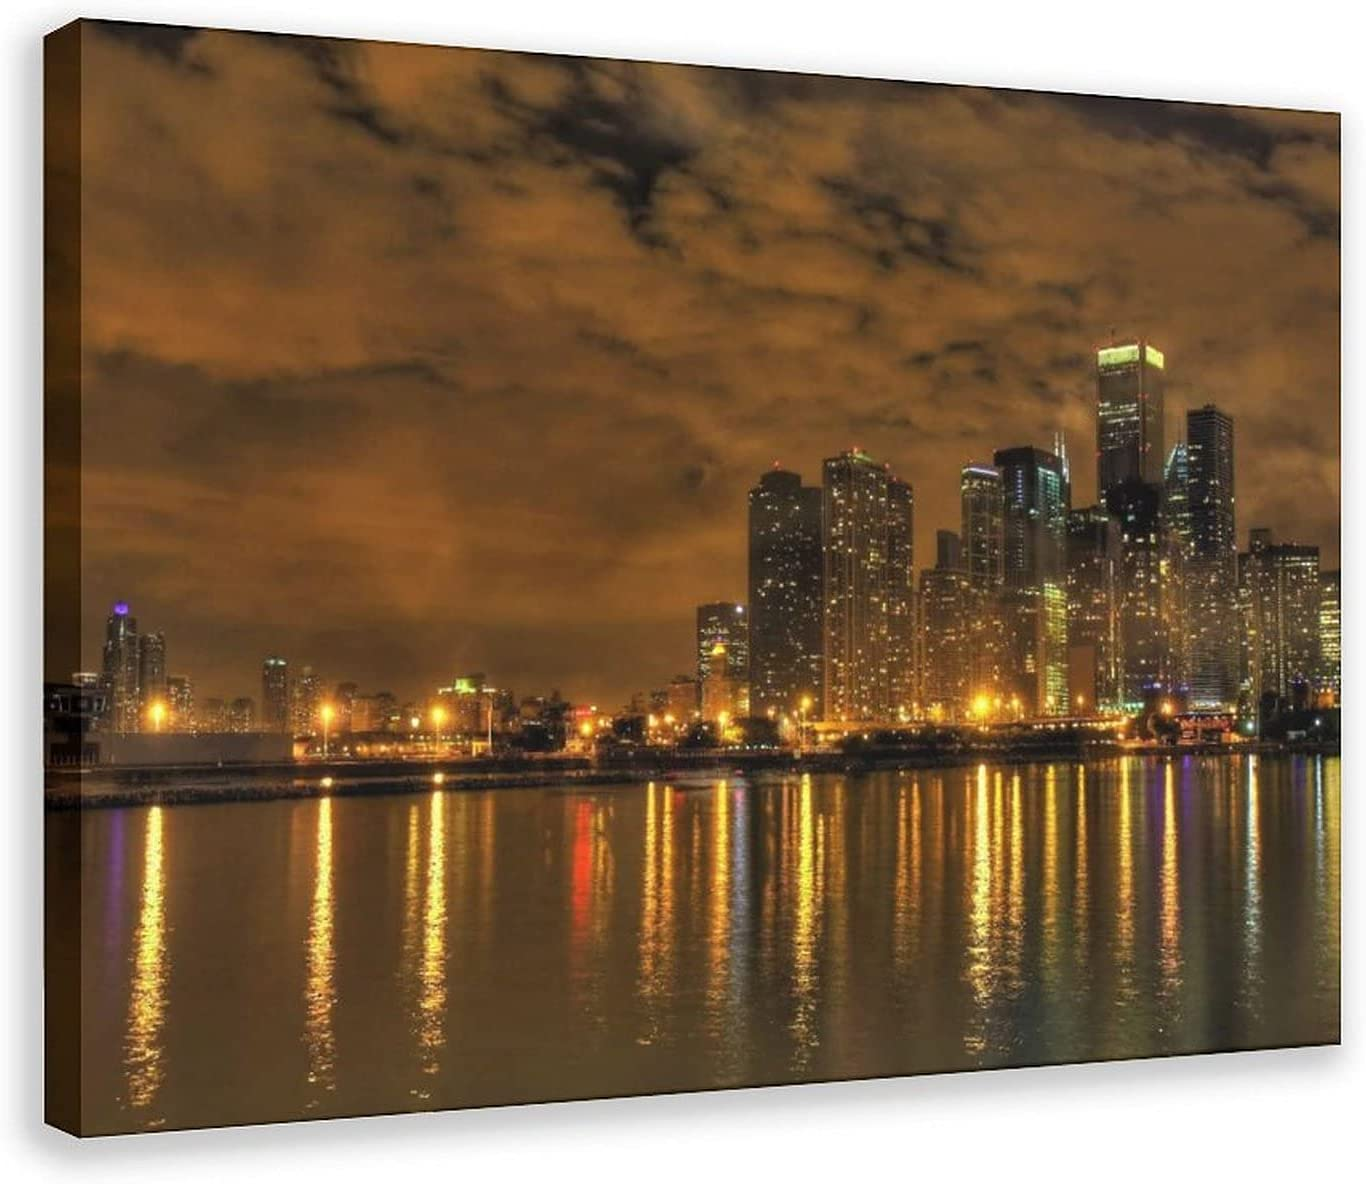 Max 58% OFF Cityscape Chicago Lake Night Canvas Limited price Art Poster Decor Wall Print